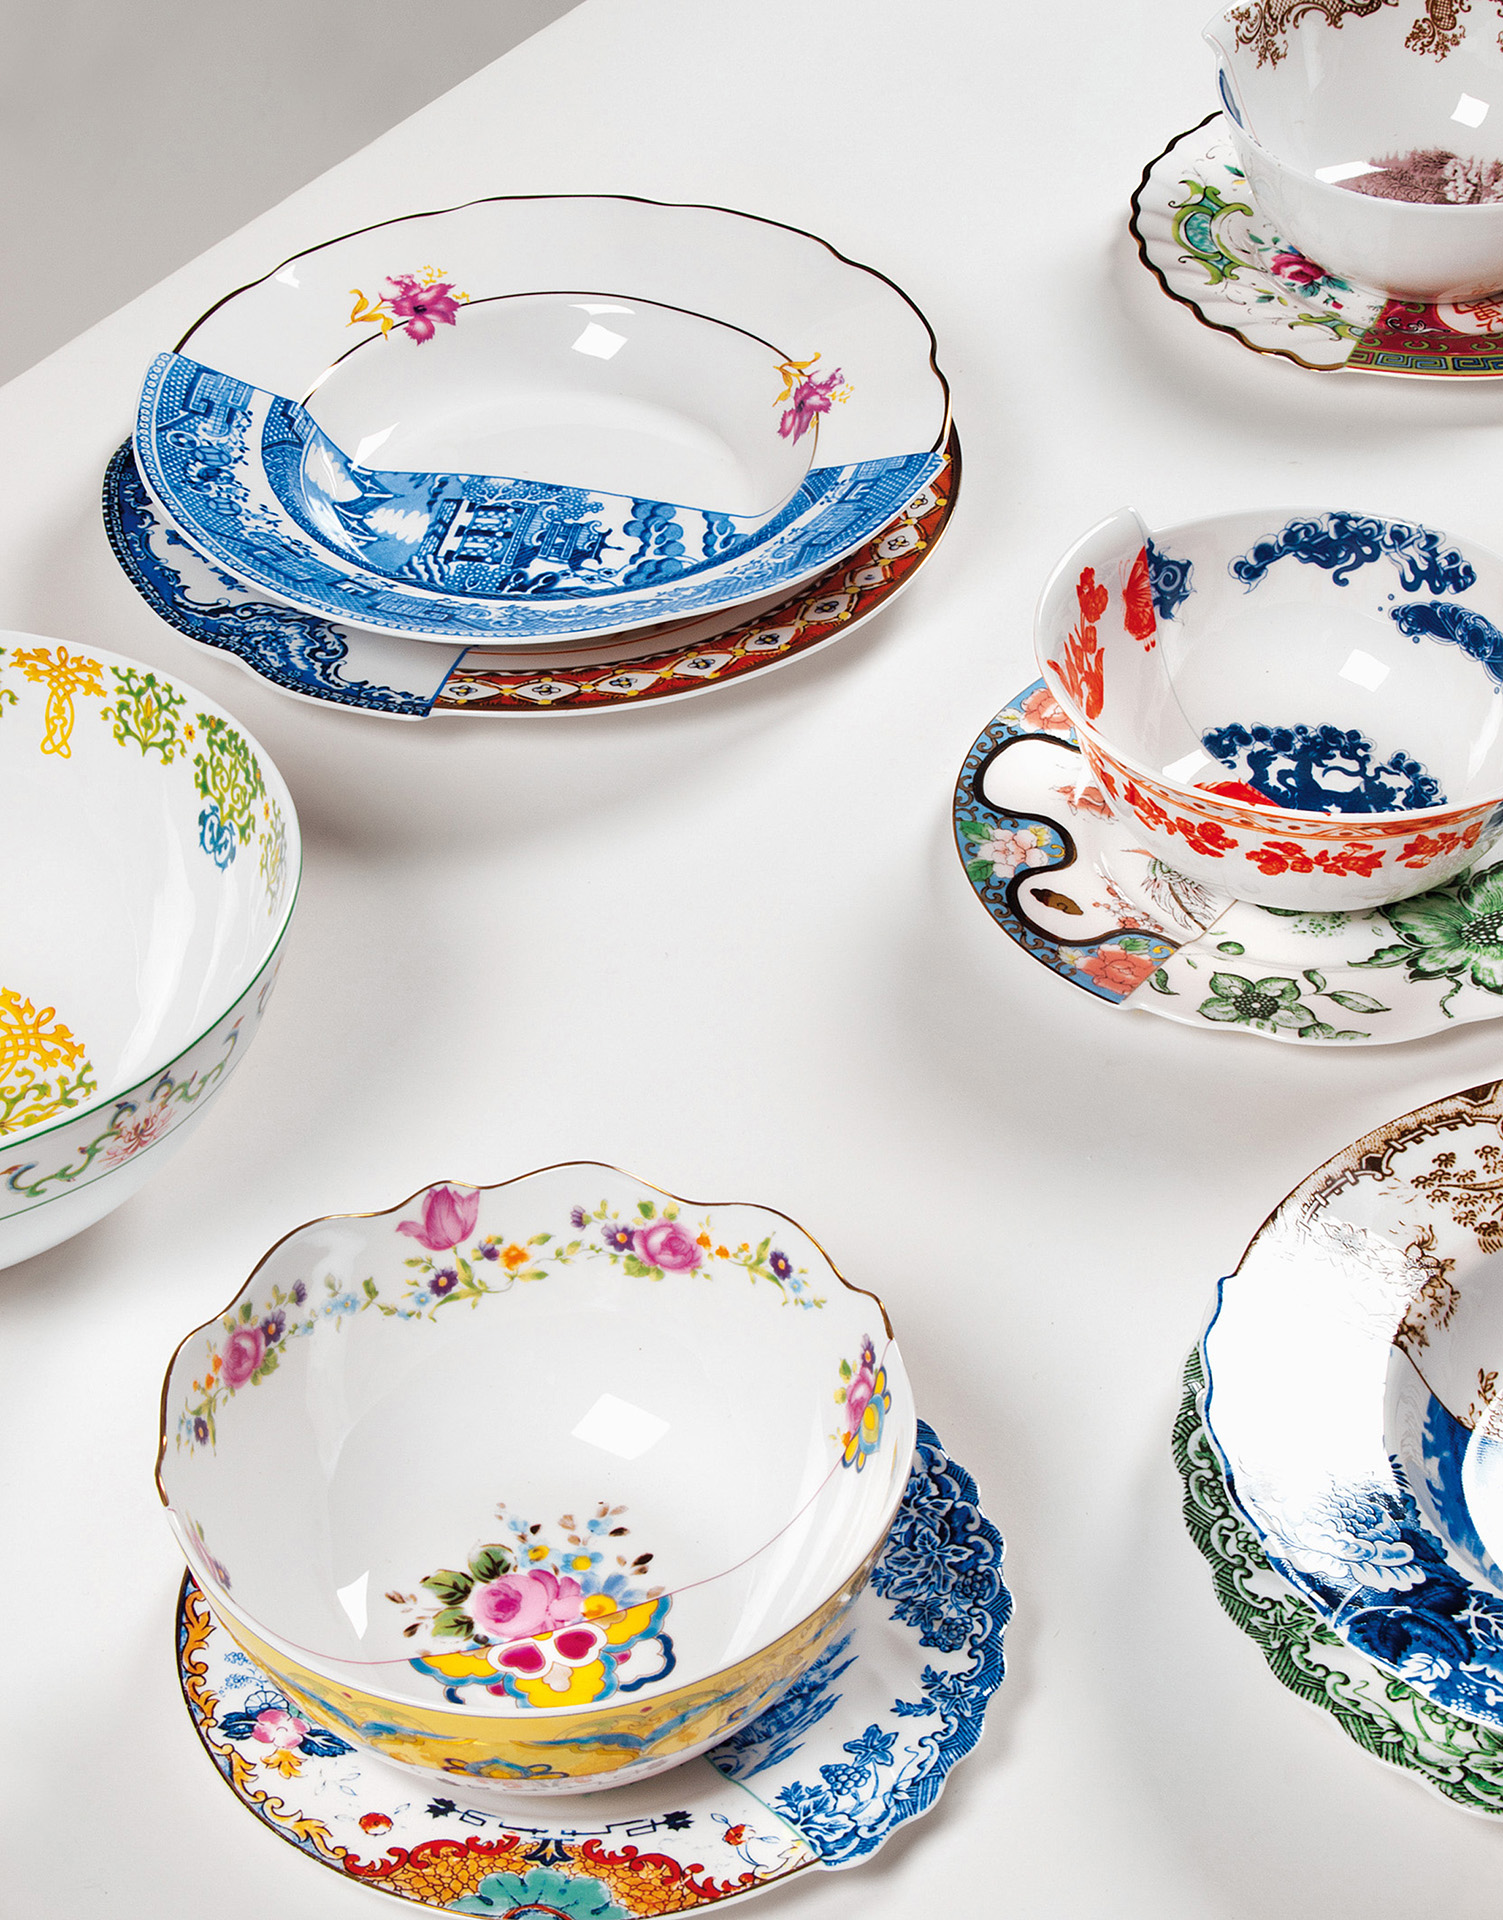 Seletti - Hybrid, table service where East and West meet in porcelain